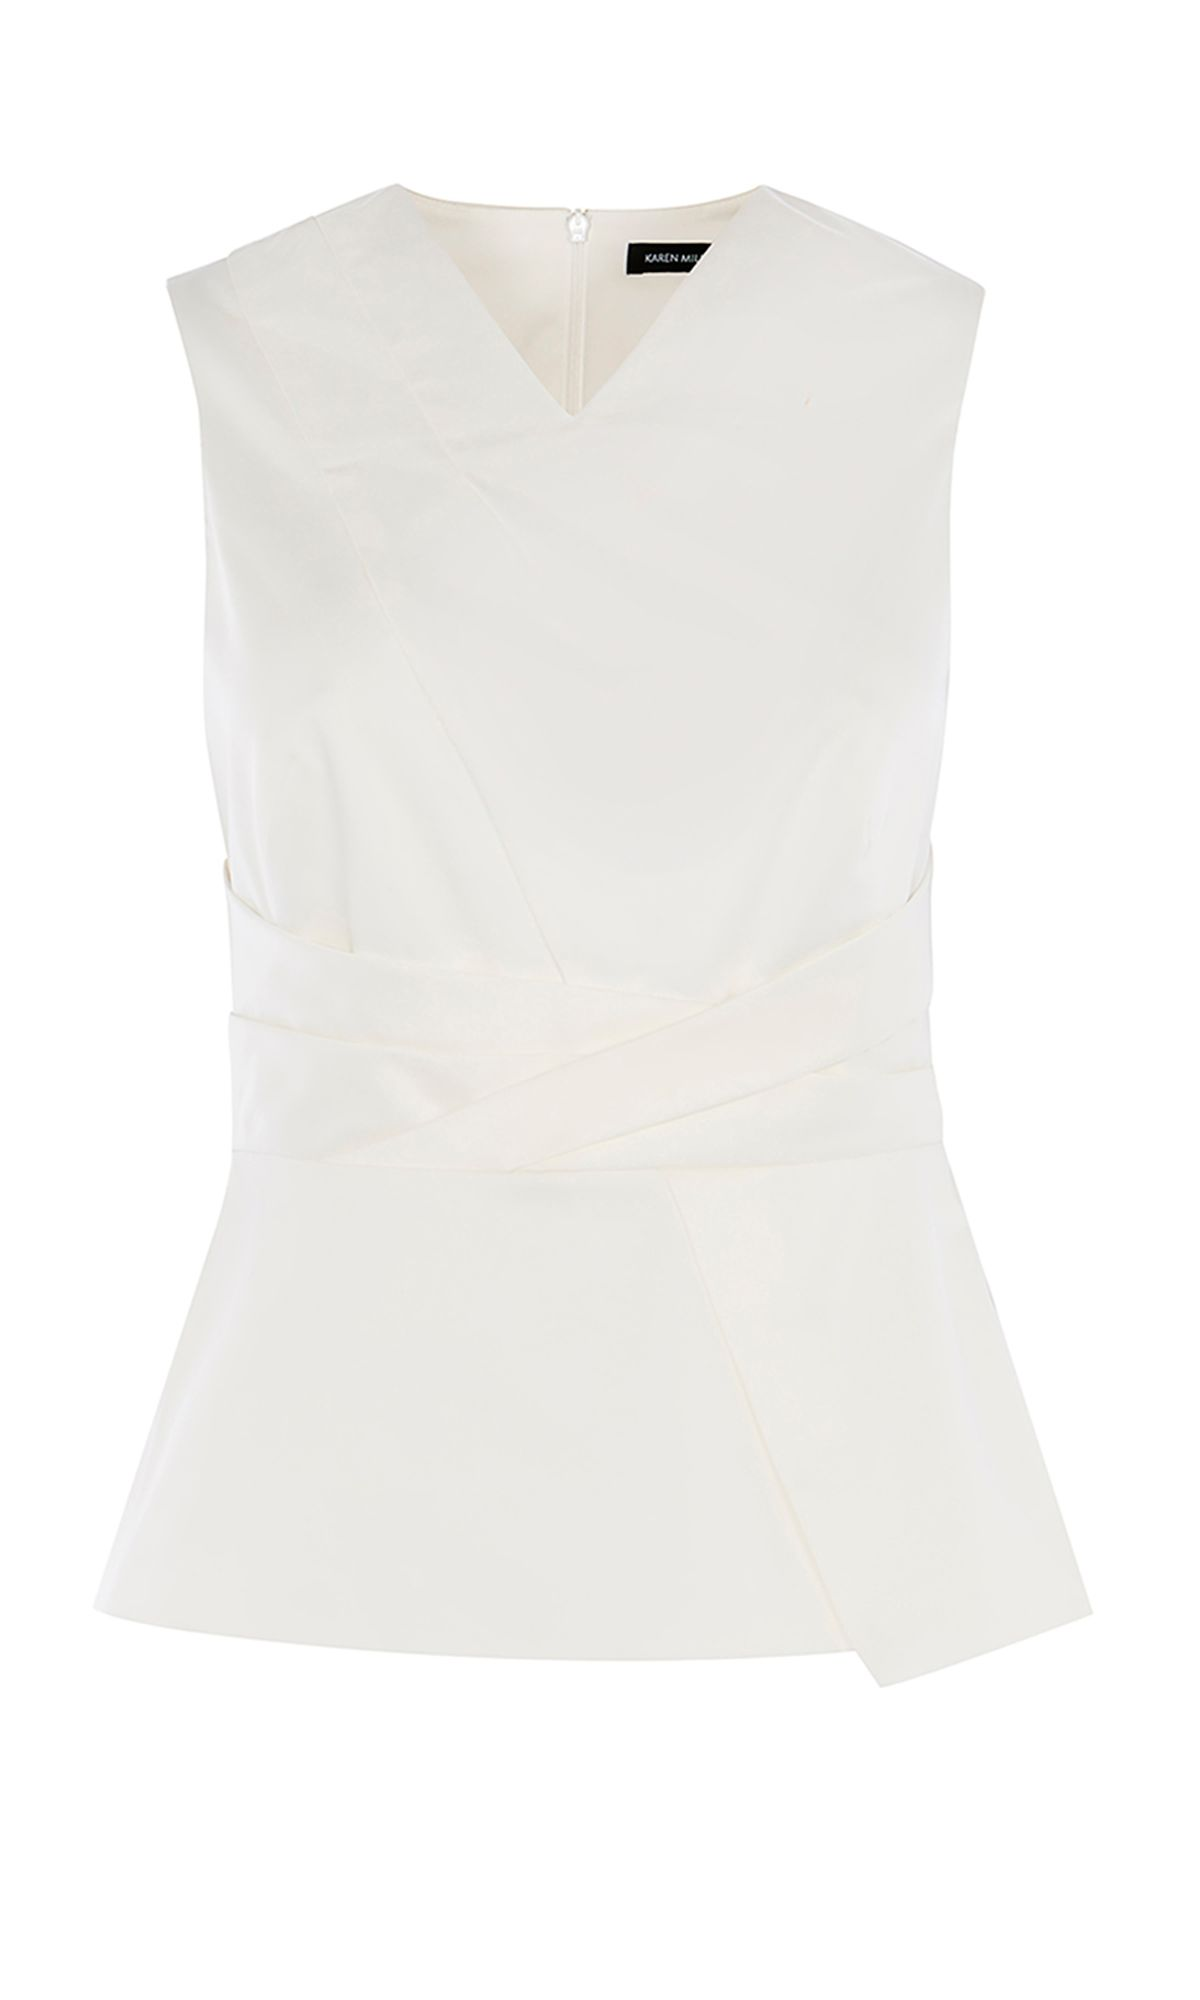 Karen Millen Origami Inspired Top, White